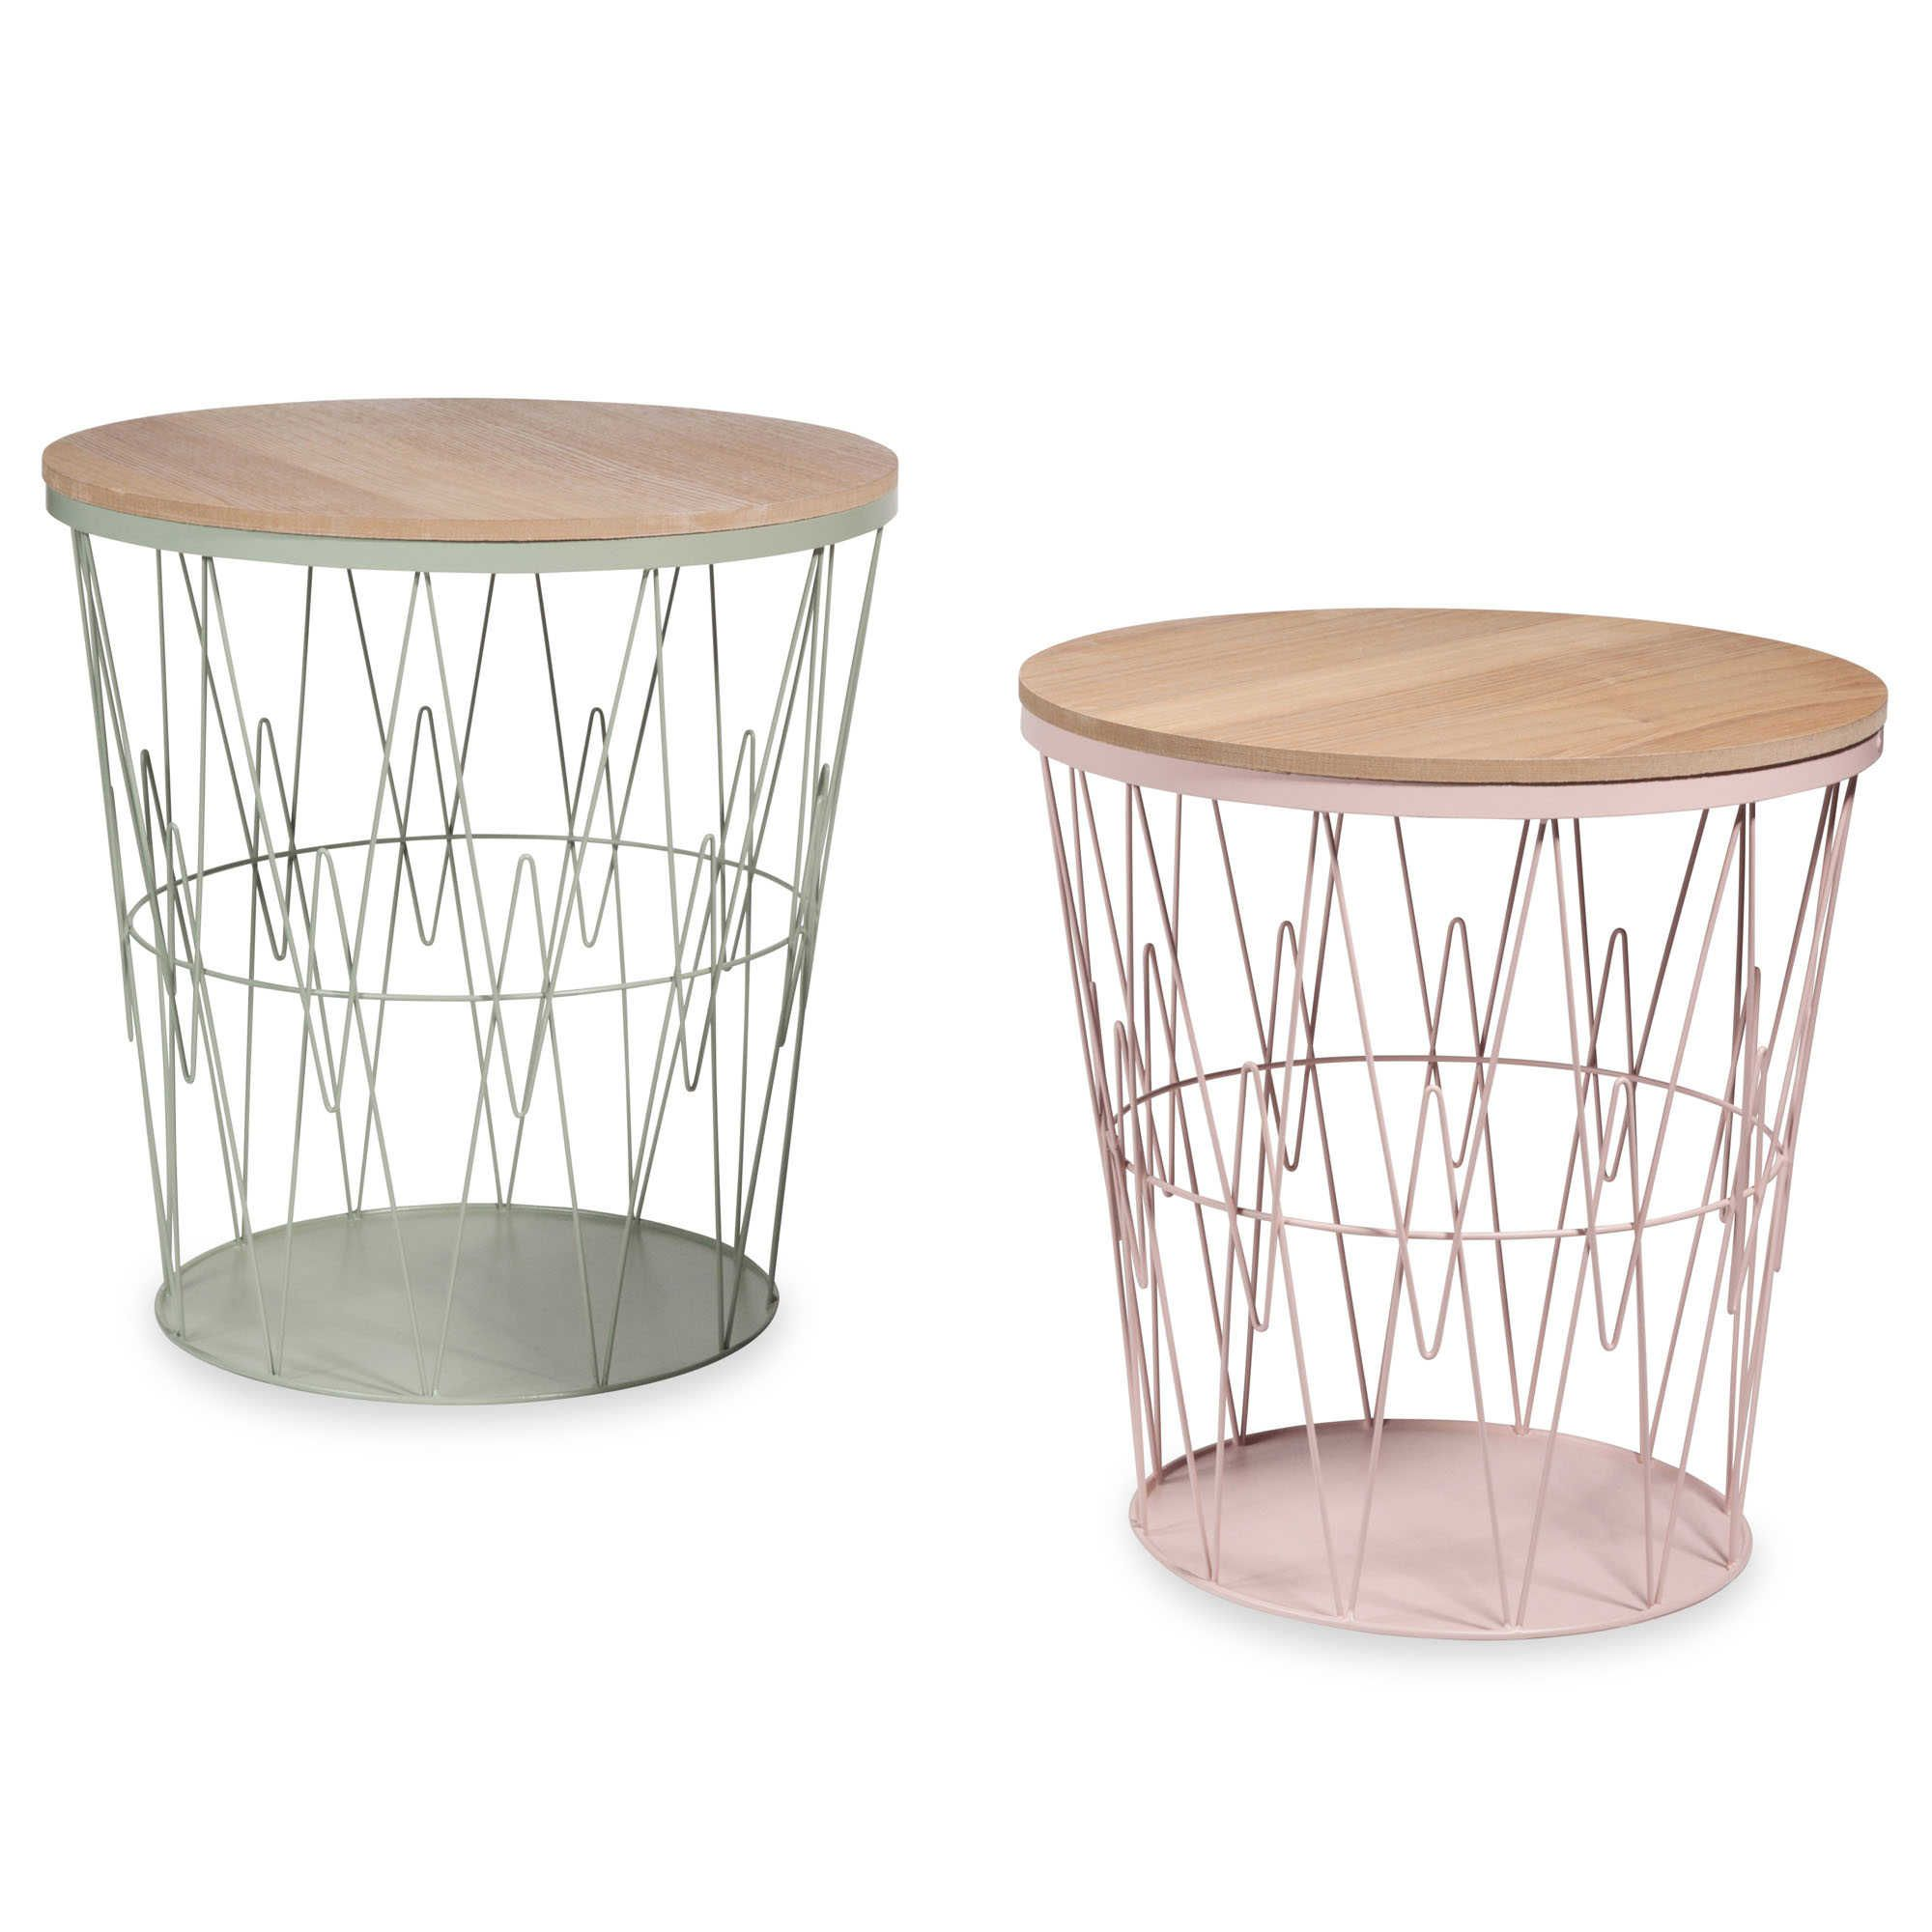 SINALOA 2 green and pink metal wire side tables